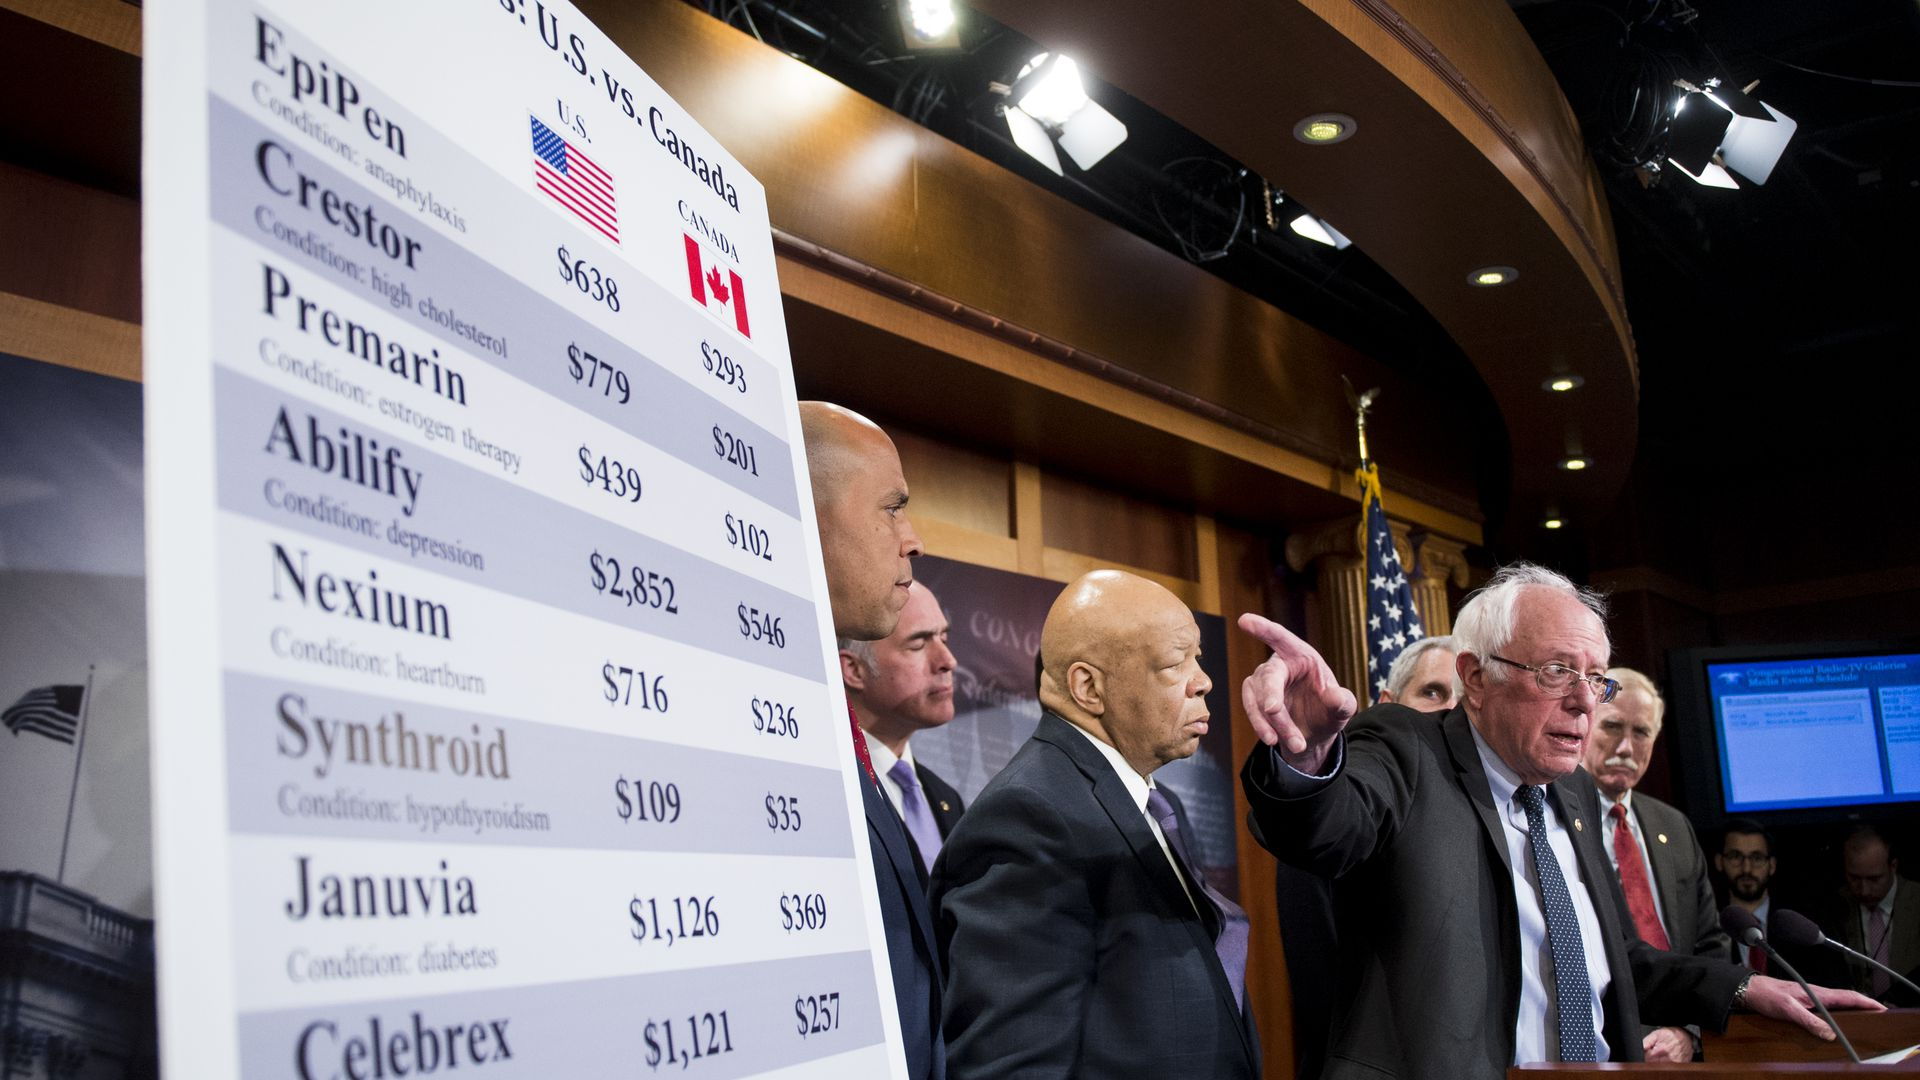 Bernie Sanders pointing at a poster with drug prices.